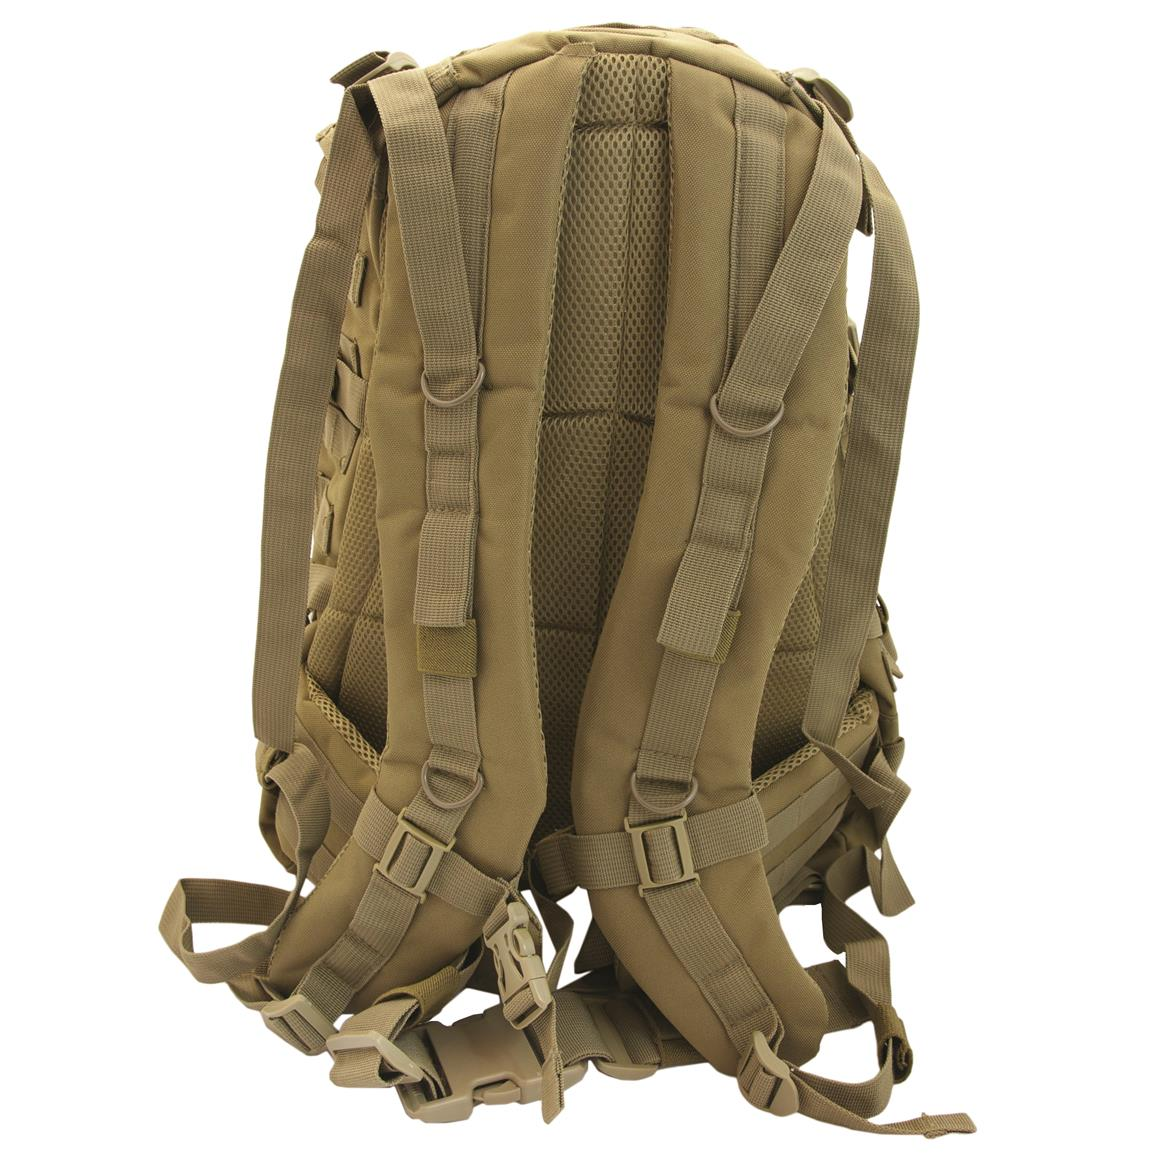 Humvee Day Pack Gear Bag, Tan, Back